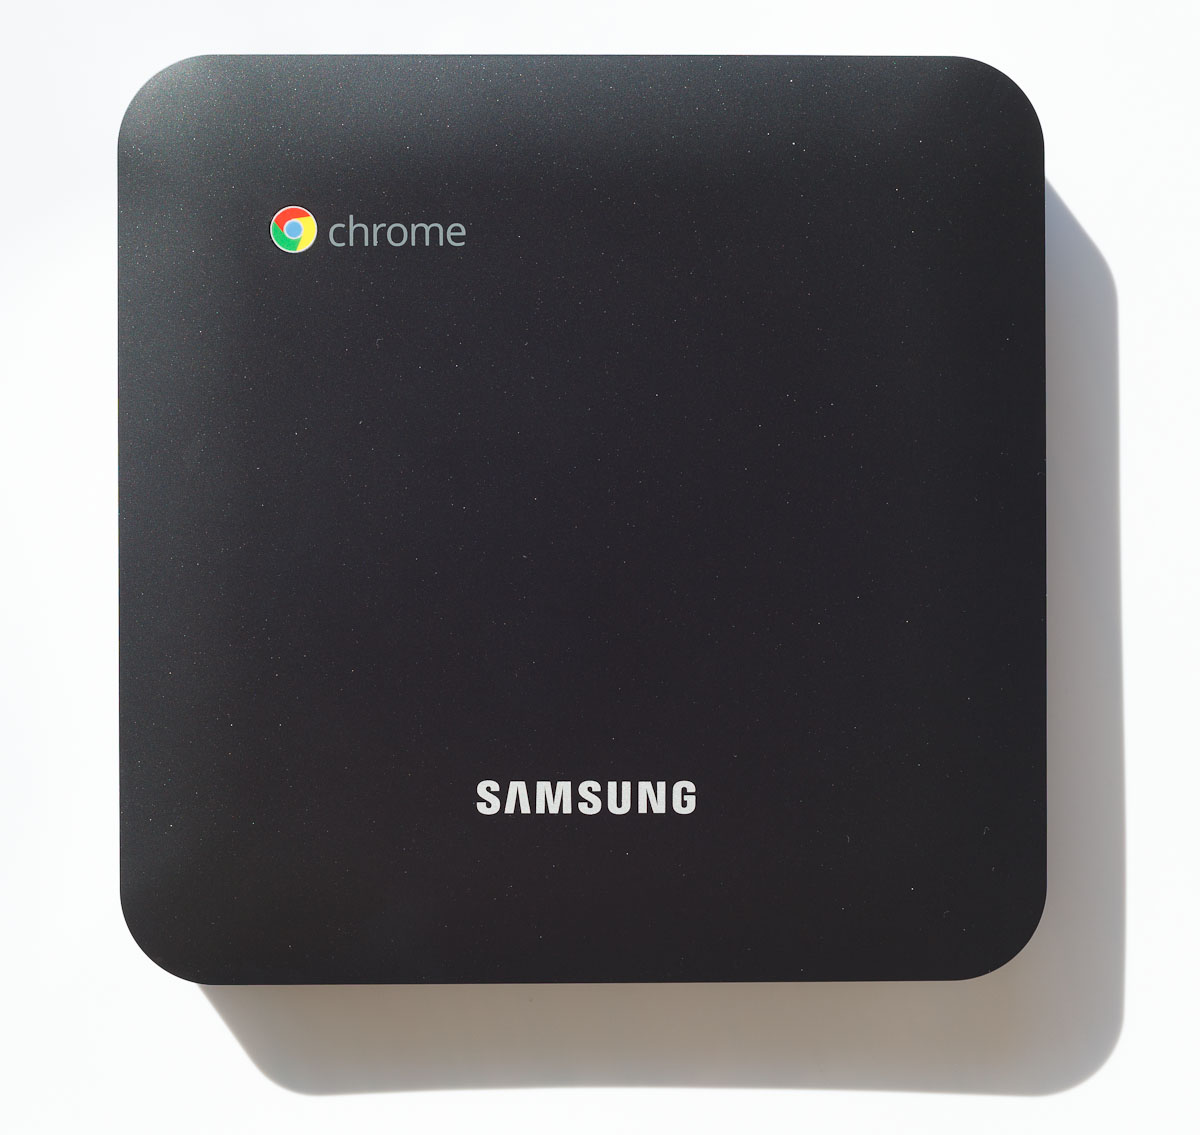 The Series 3 Chromebox is about 7.5 inches square as viewed from the top. At $329, it's cheaper than the Chromebook laptops that were the first to bring Google's Chrome OS to the market starting in 2011.